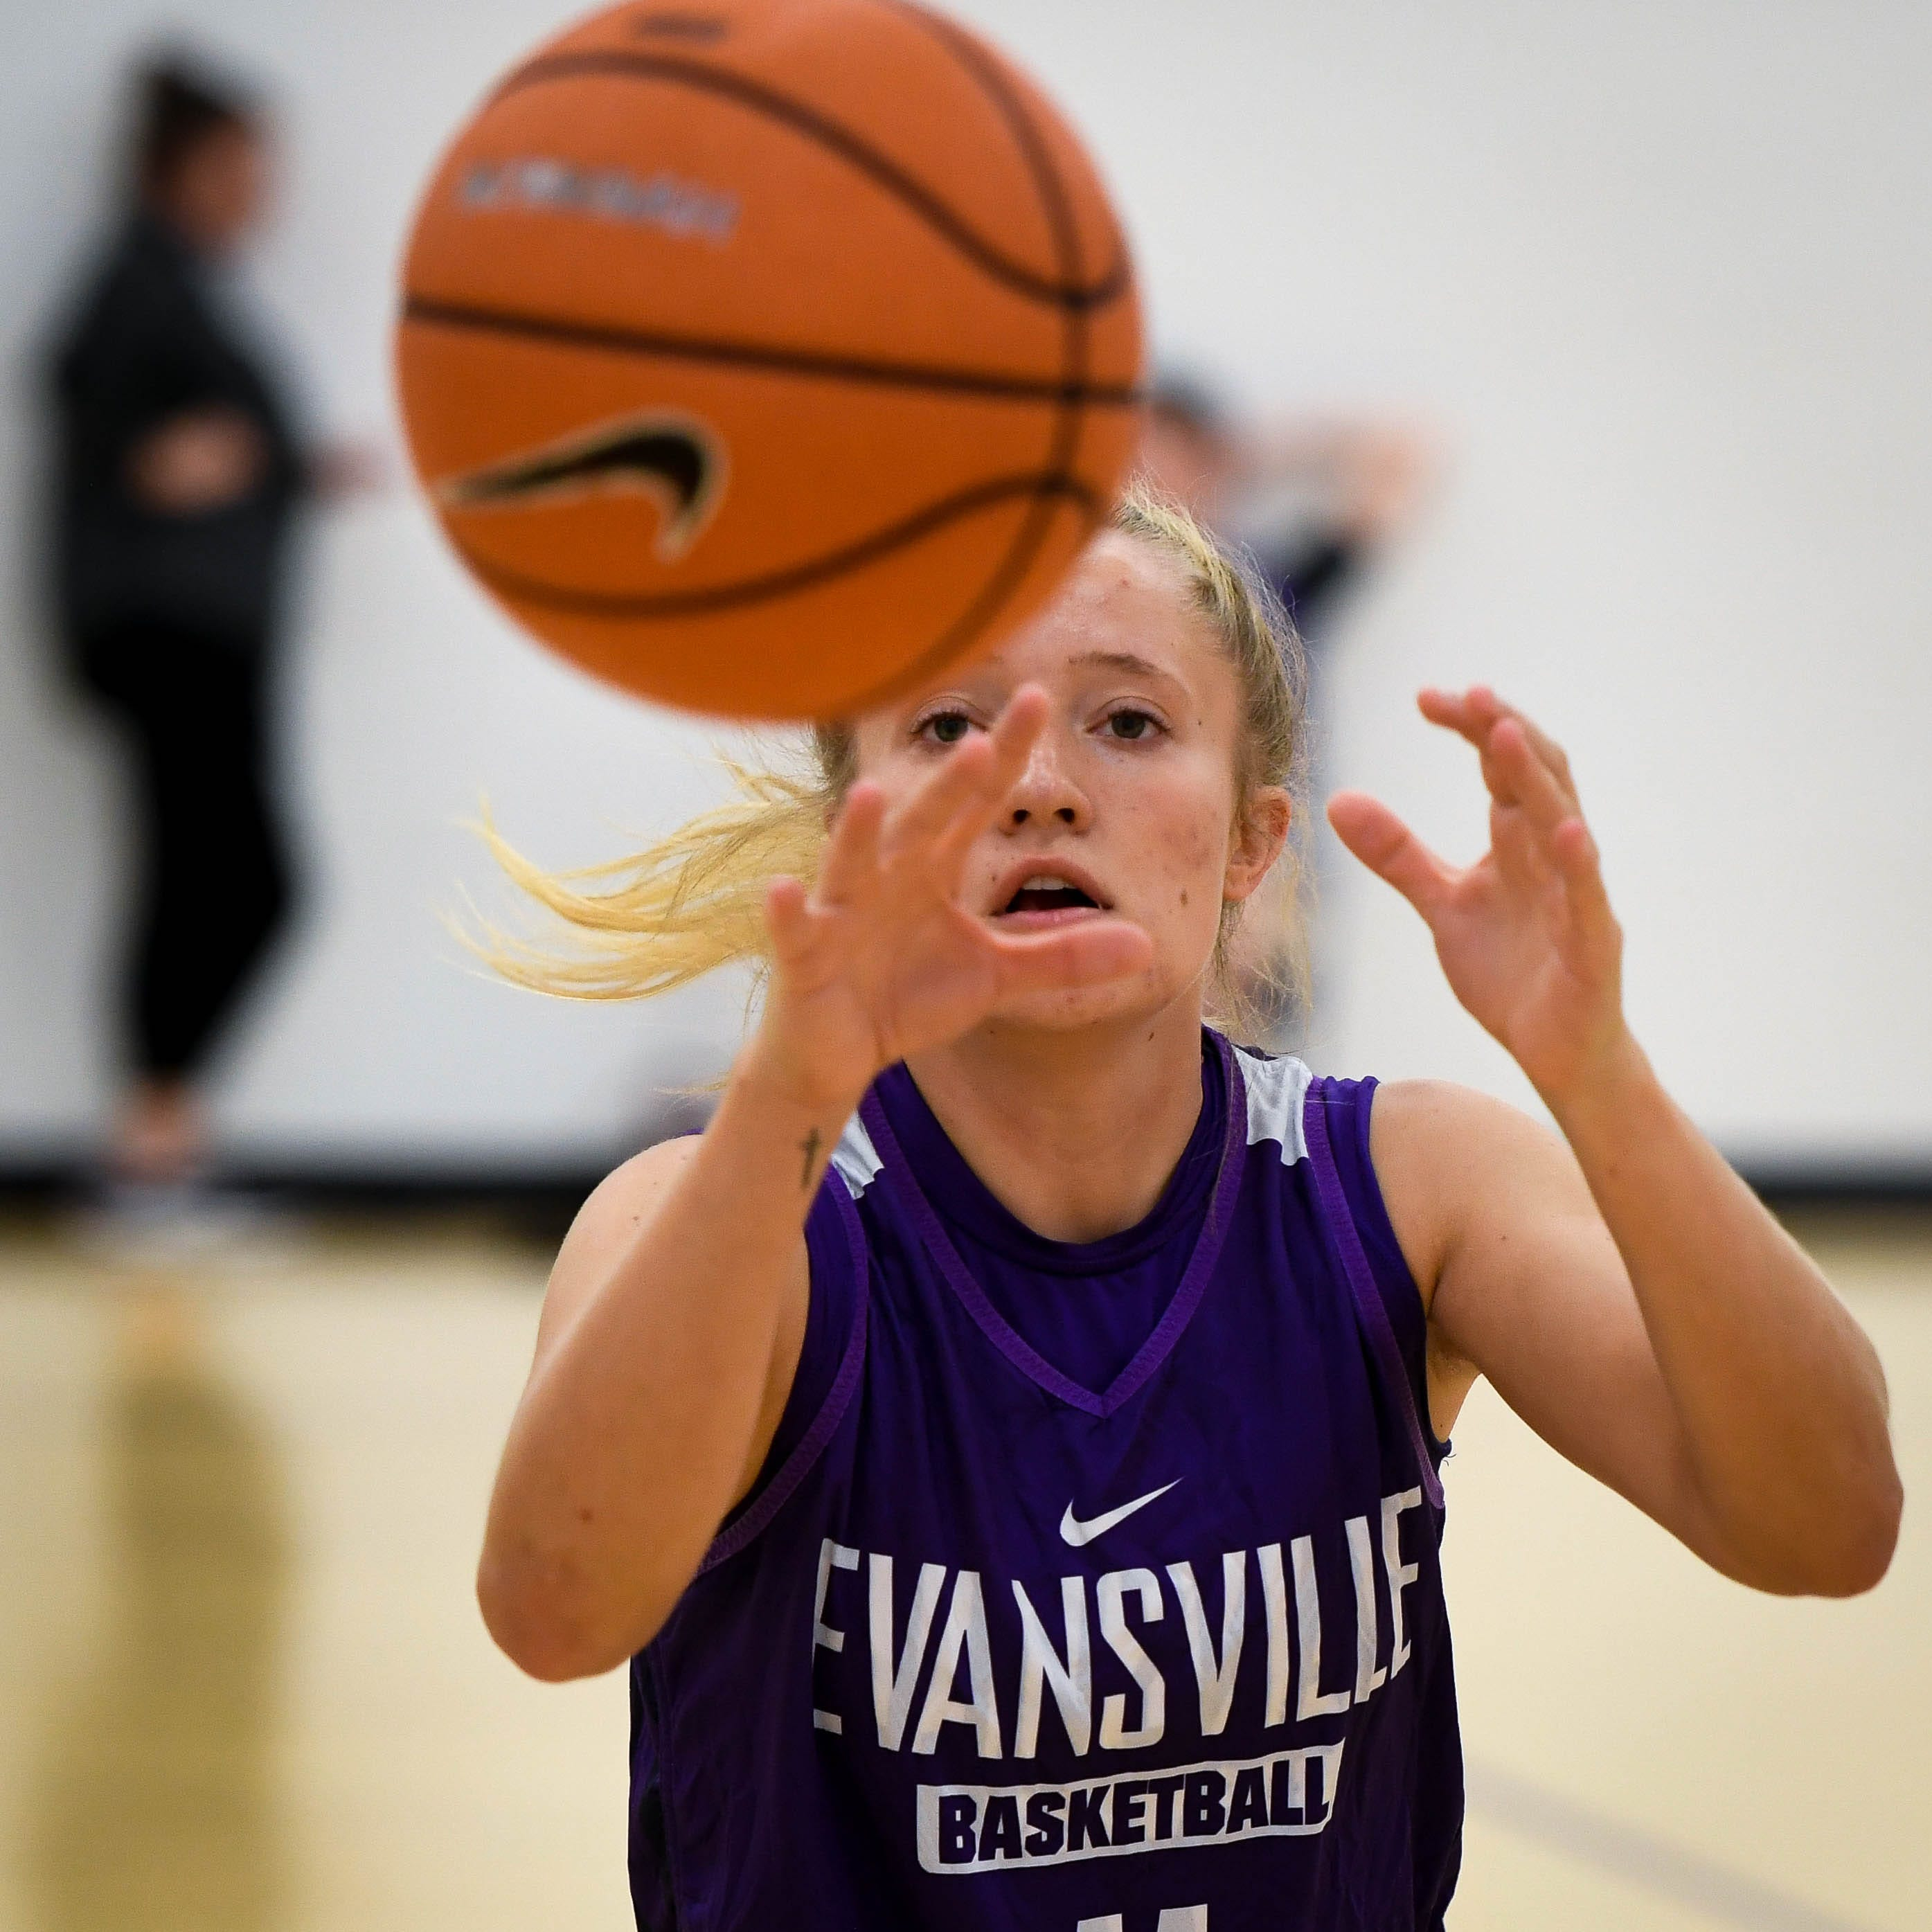 UE women's basketball standout Brooke Dossett fighting Multiple Sclerosis in life and on the court